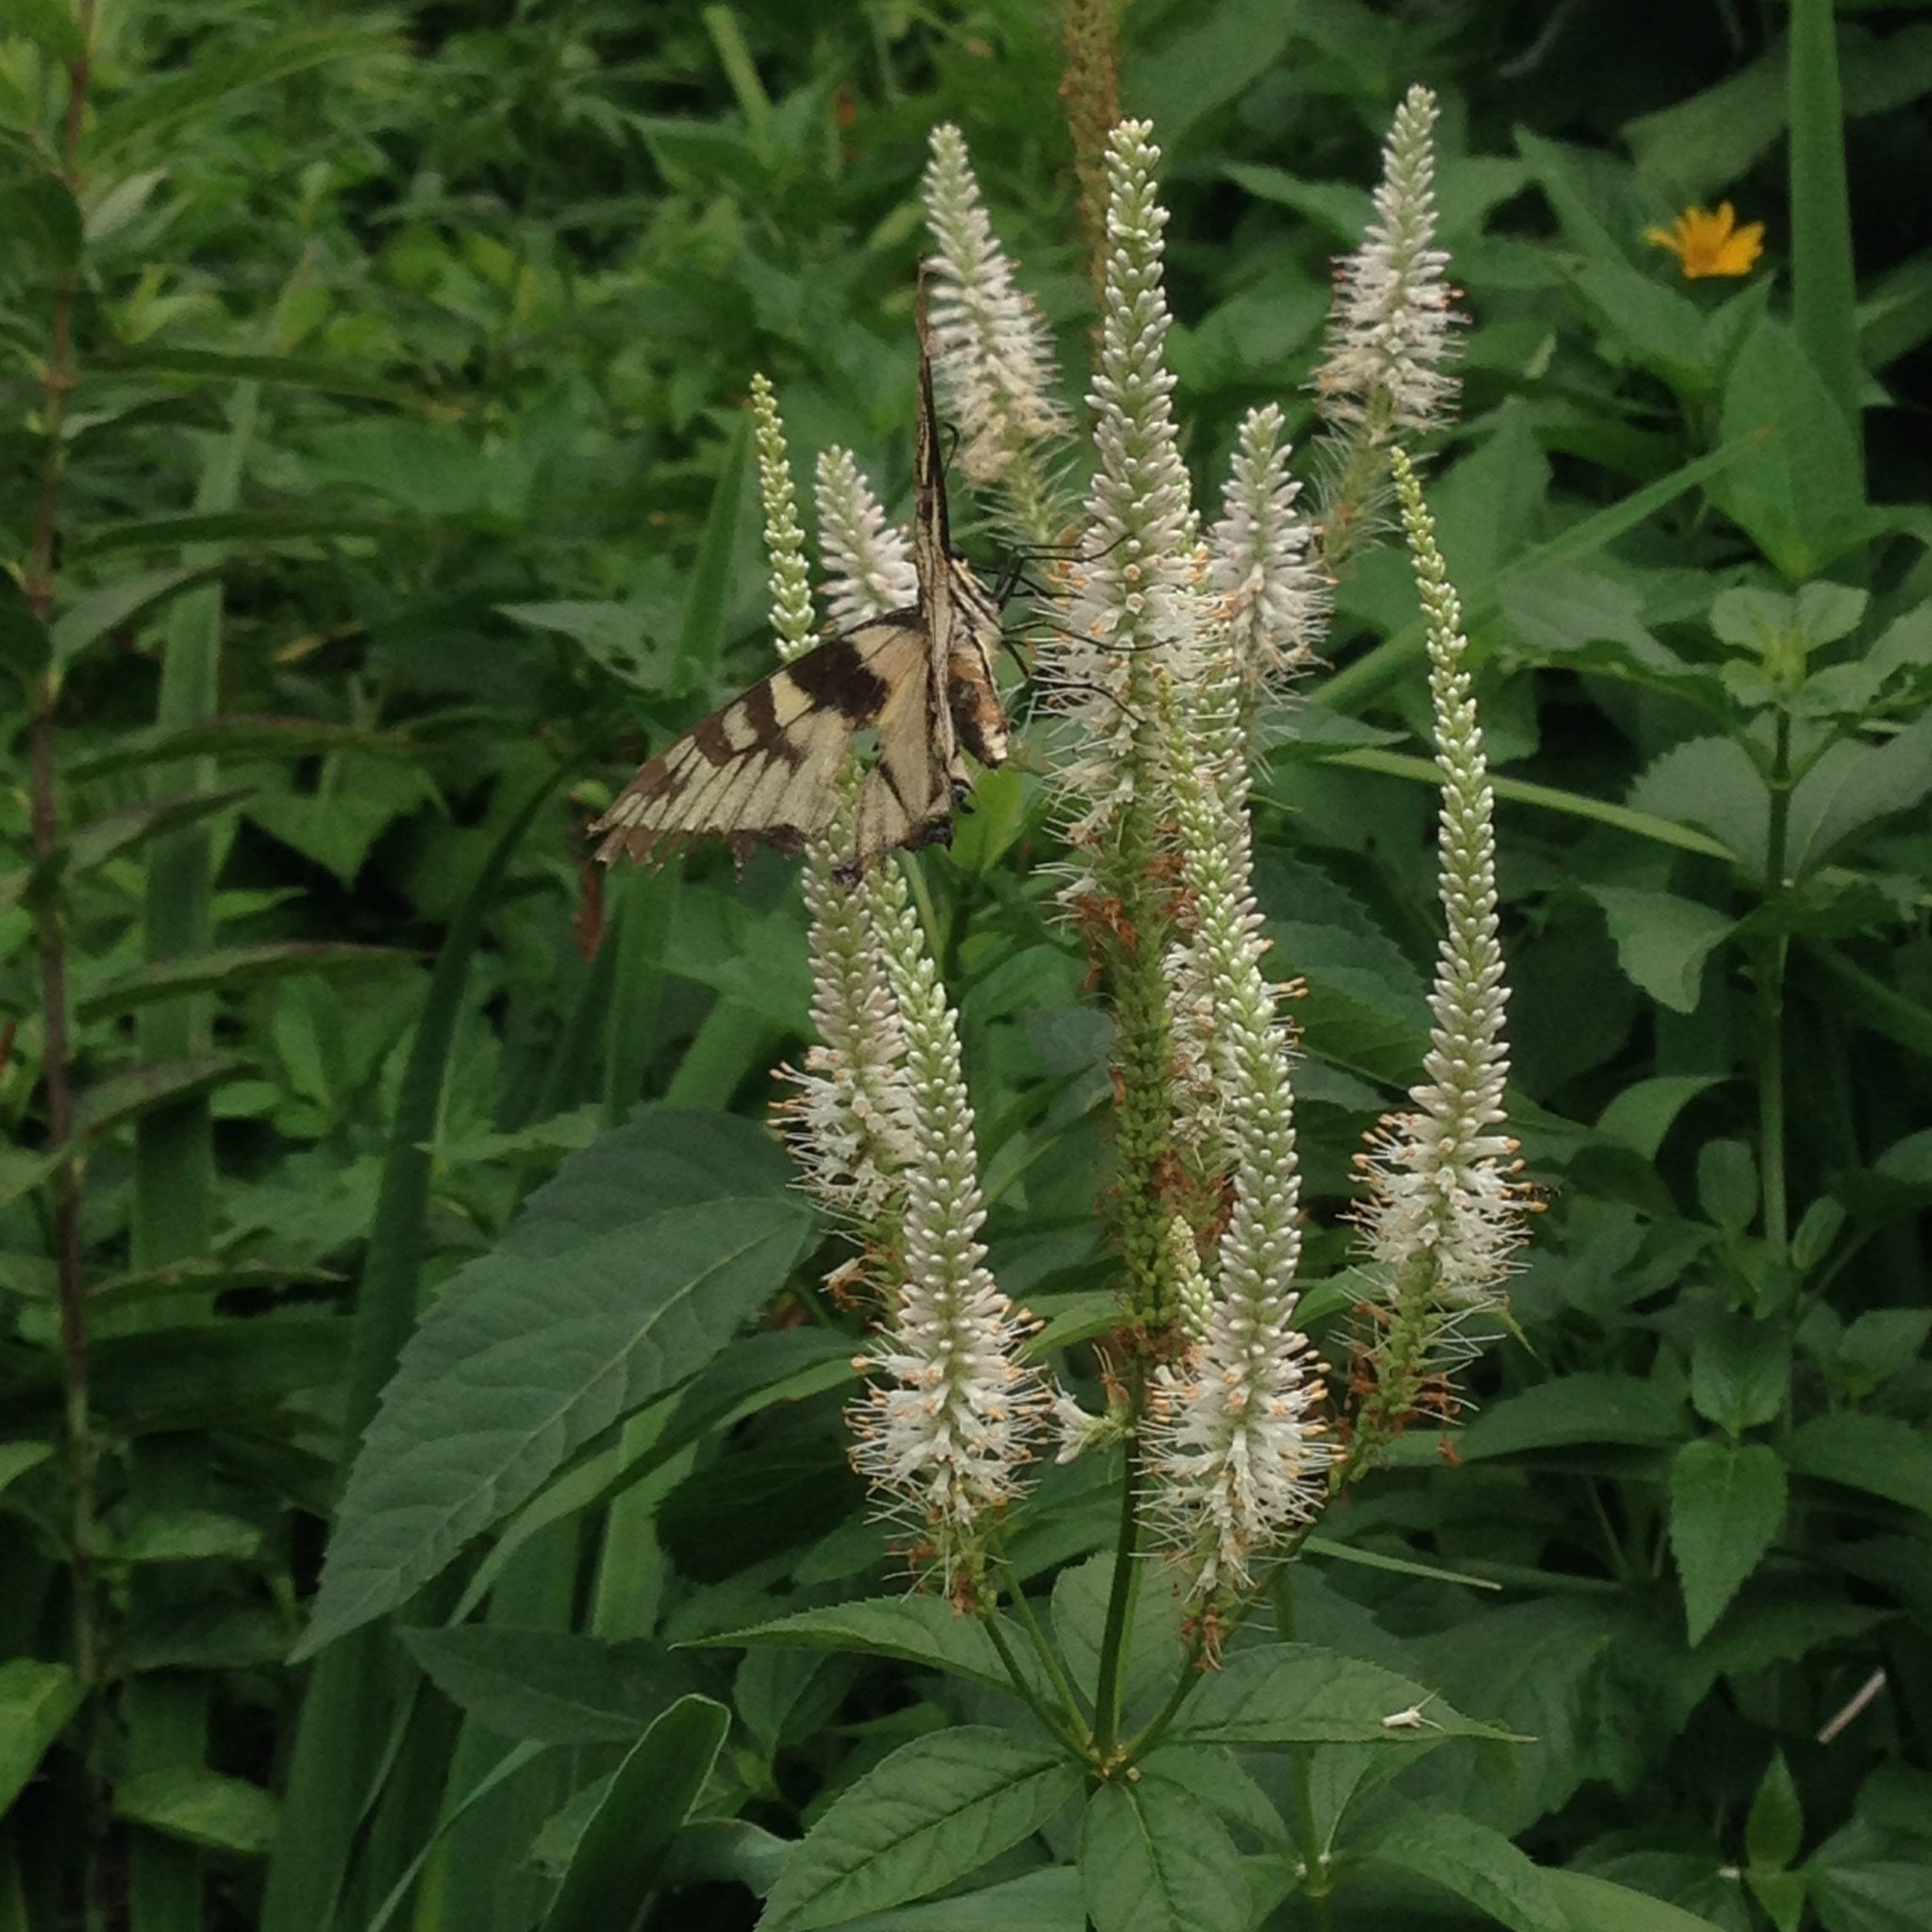 Veronicastrum virginicum - Culver's root